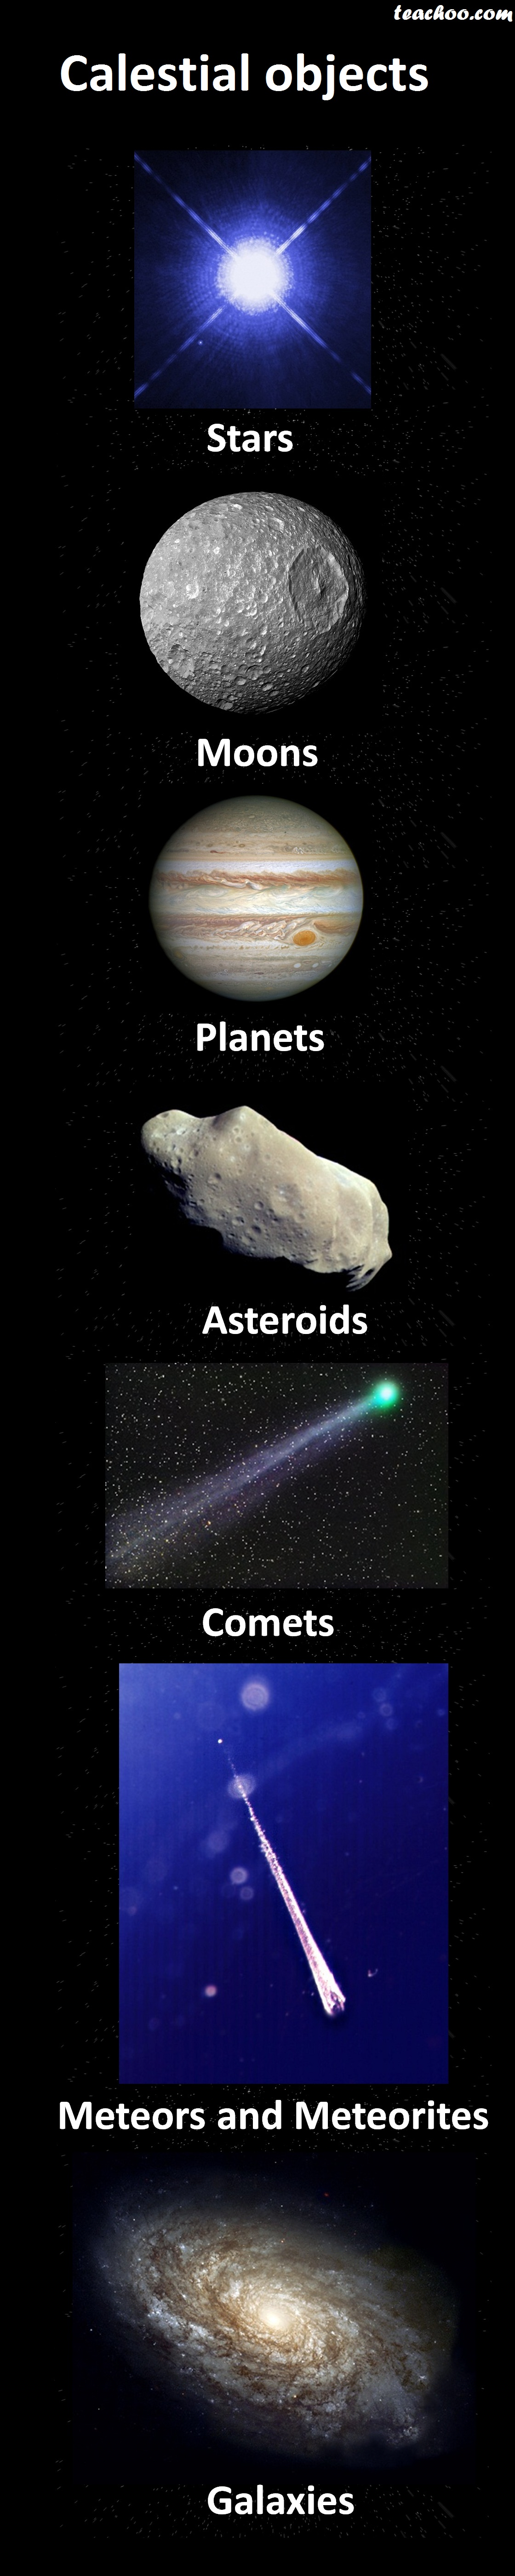 Calestial objects.jpg